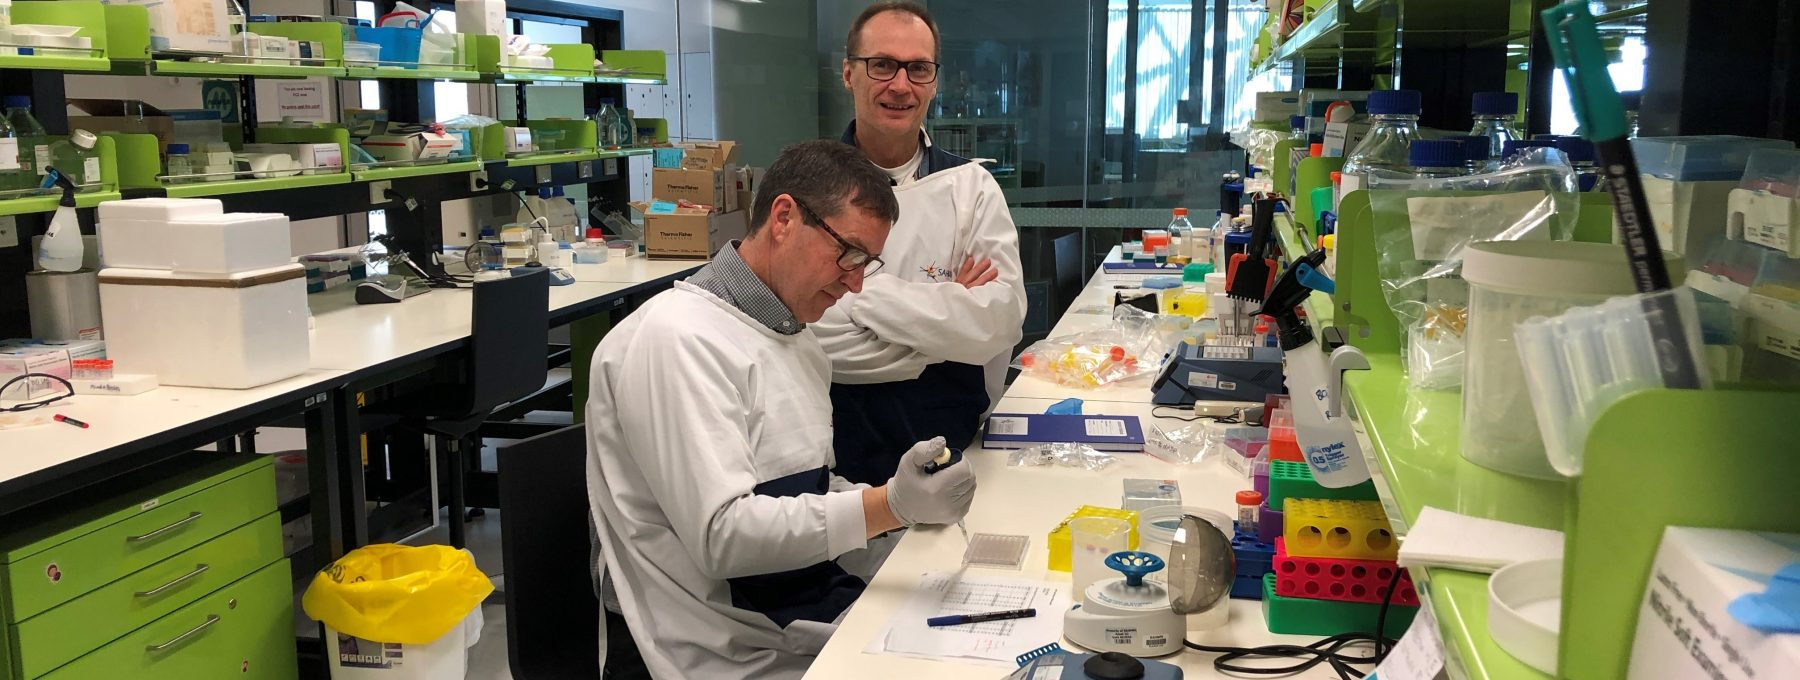 Donate to SA Research SAHMRI lab Cytokines Mike and Martin landscape